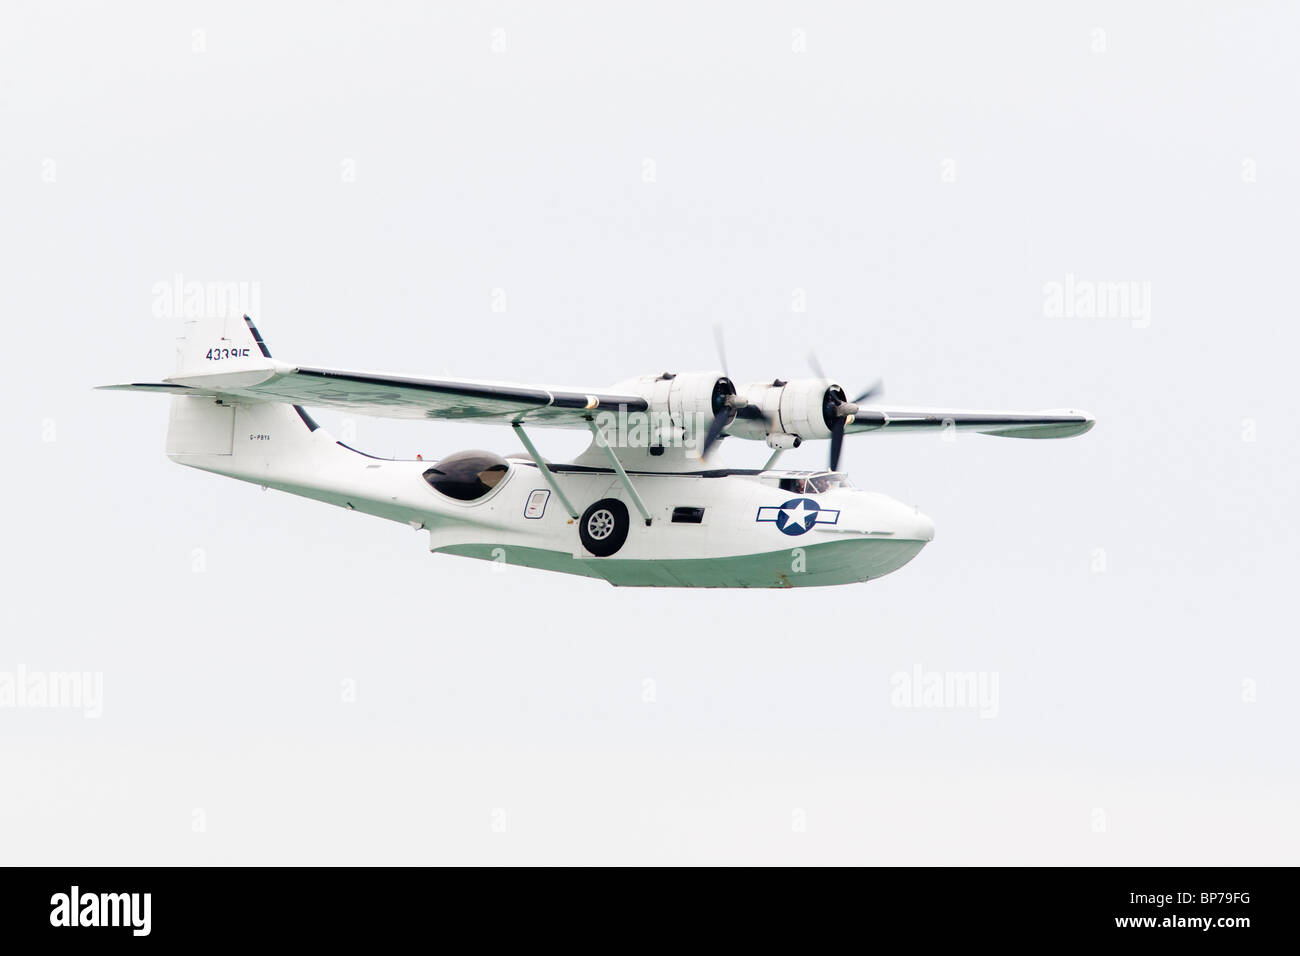 A Catalina flying boat at the Airbourne airshow, Eastbourne, East Sussex, UK - Stock Image